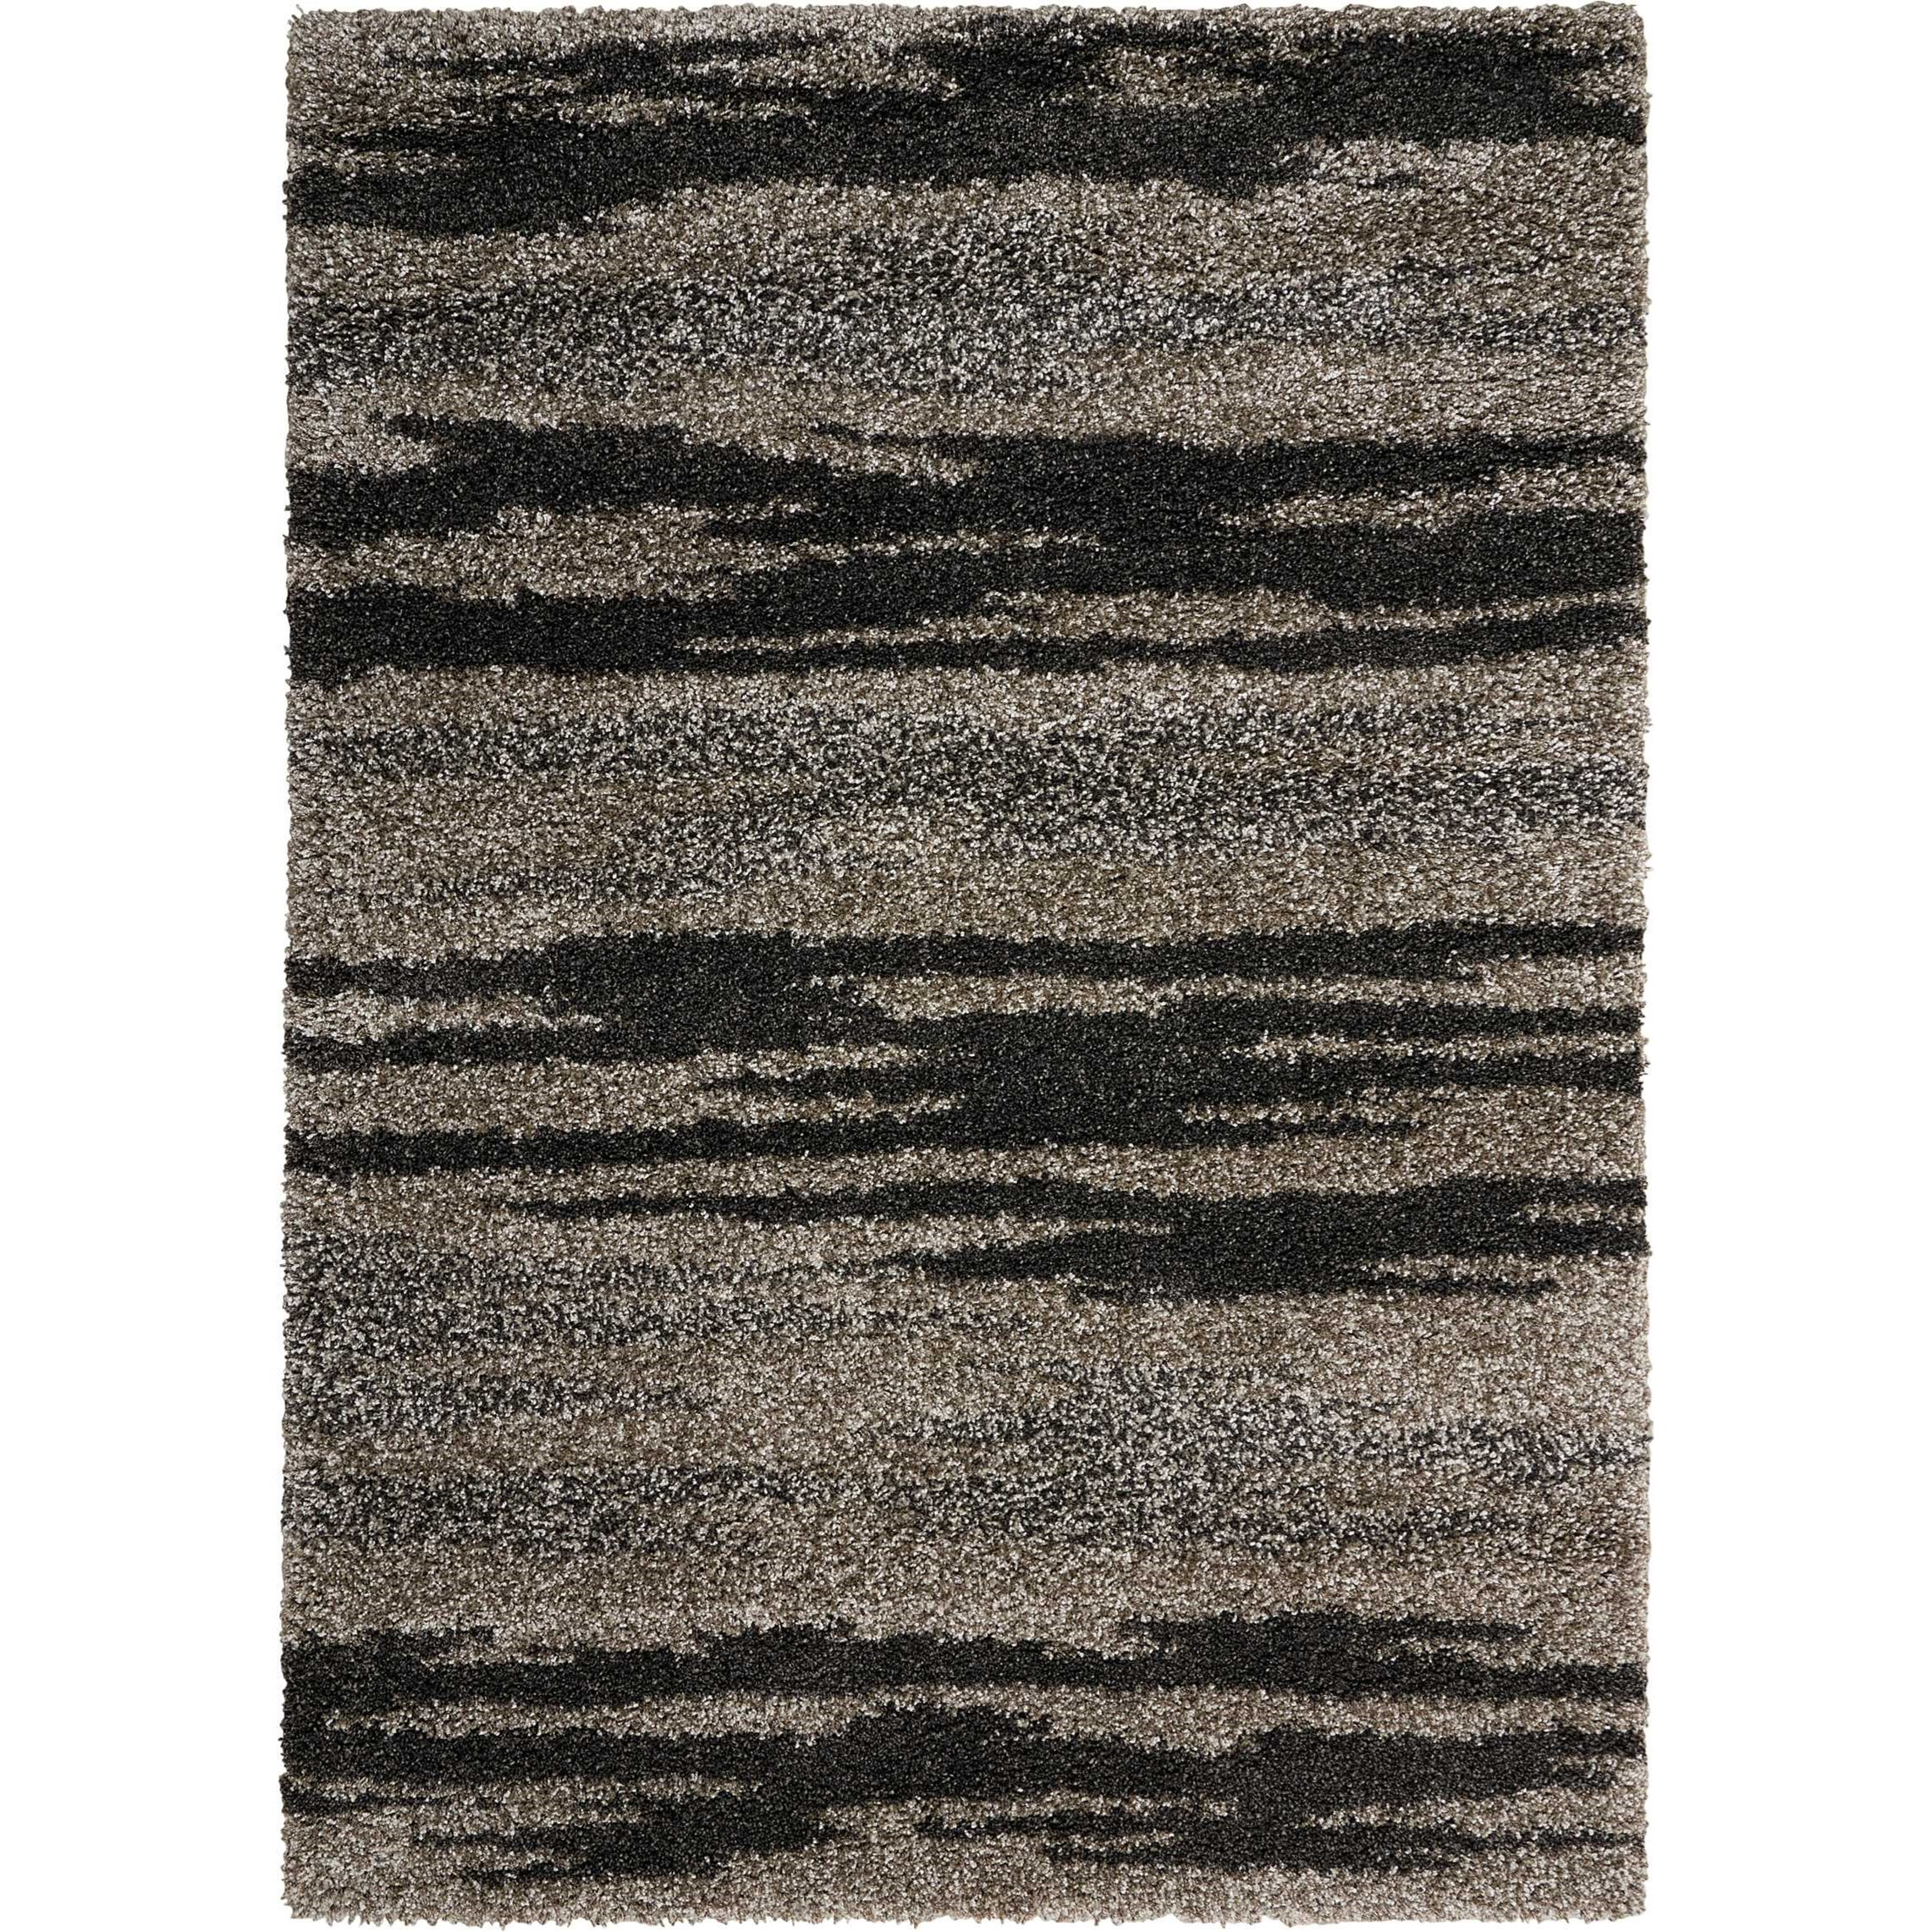 Amore Amore AMOR3 Grey 5'x8' Area Rug by Nourison at Home Collections Furniture